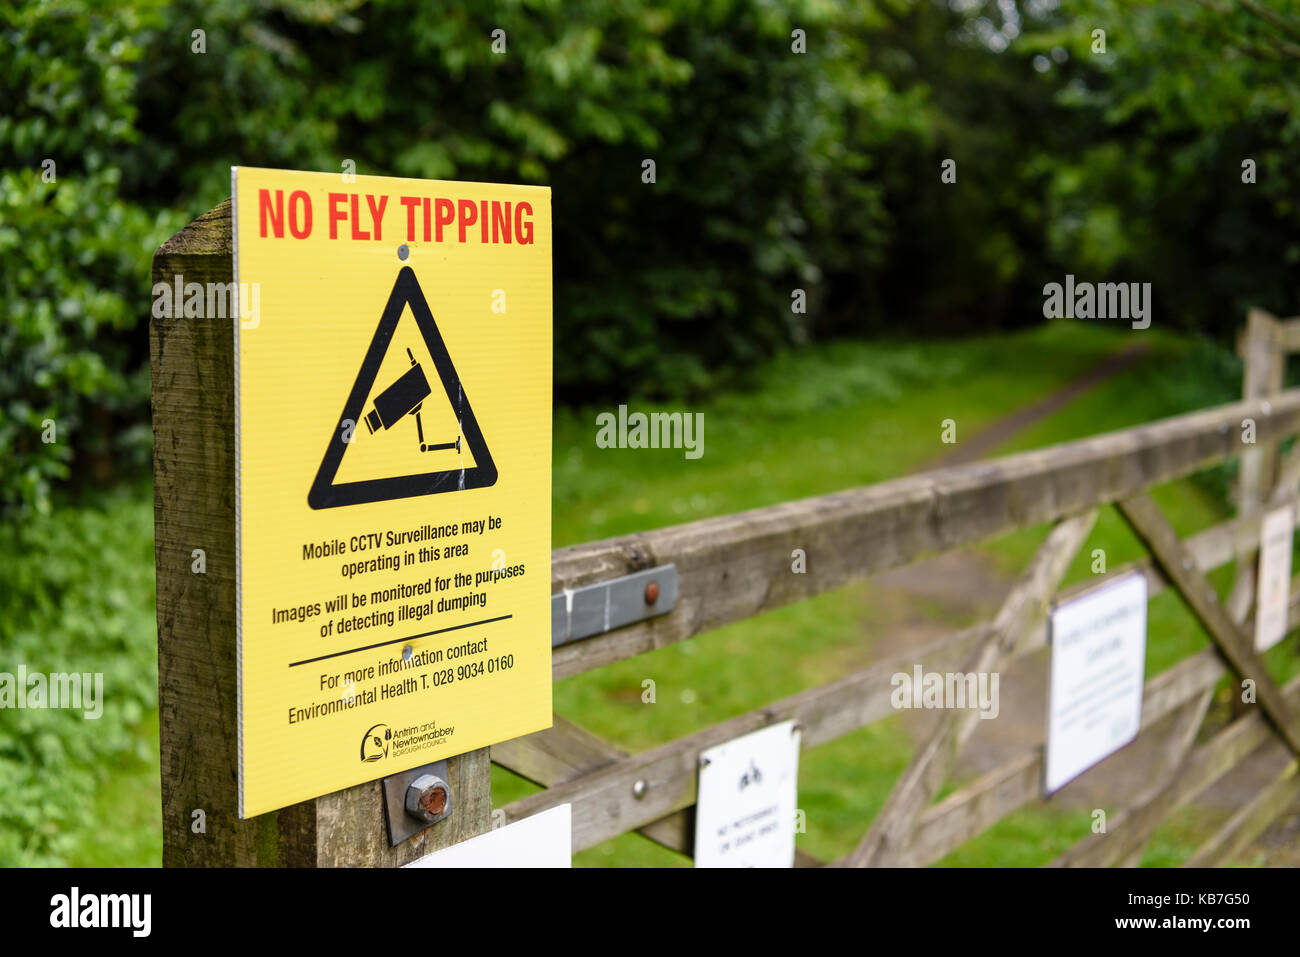 Sign at a public park warning visitors against fly tipping, and the presence of CCTV cameras to detect illegal dumping - Stock Image